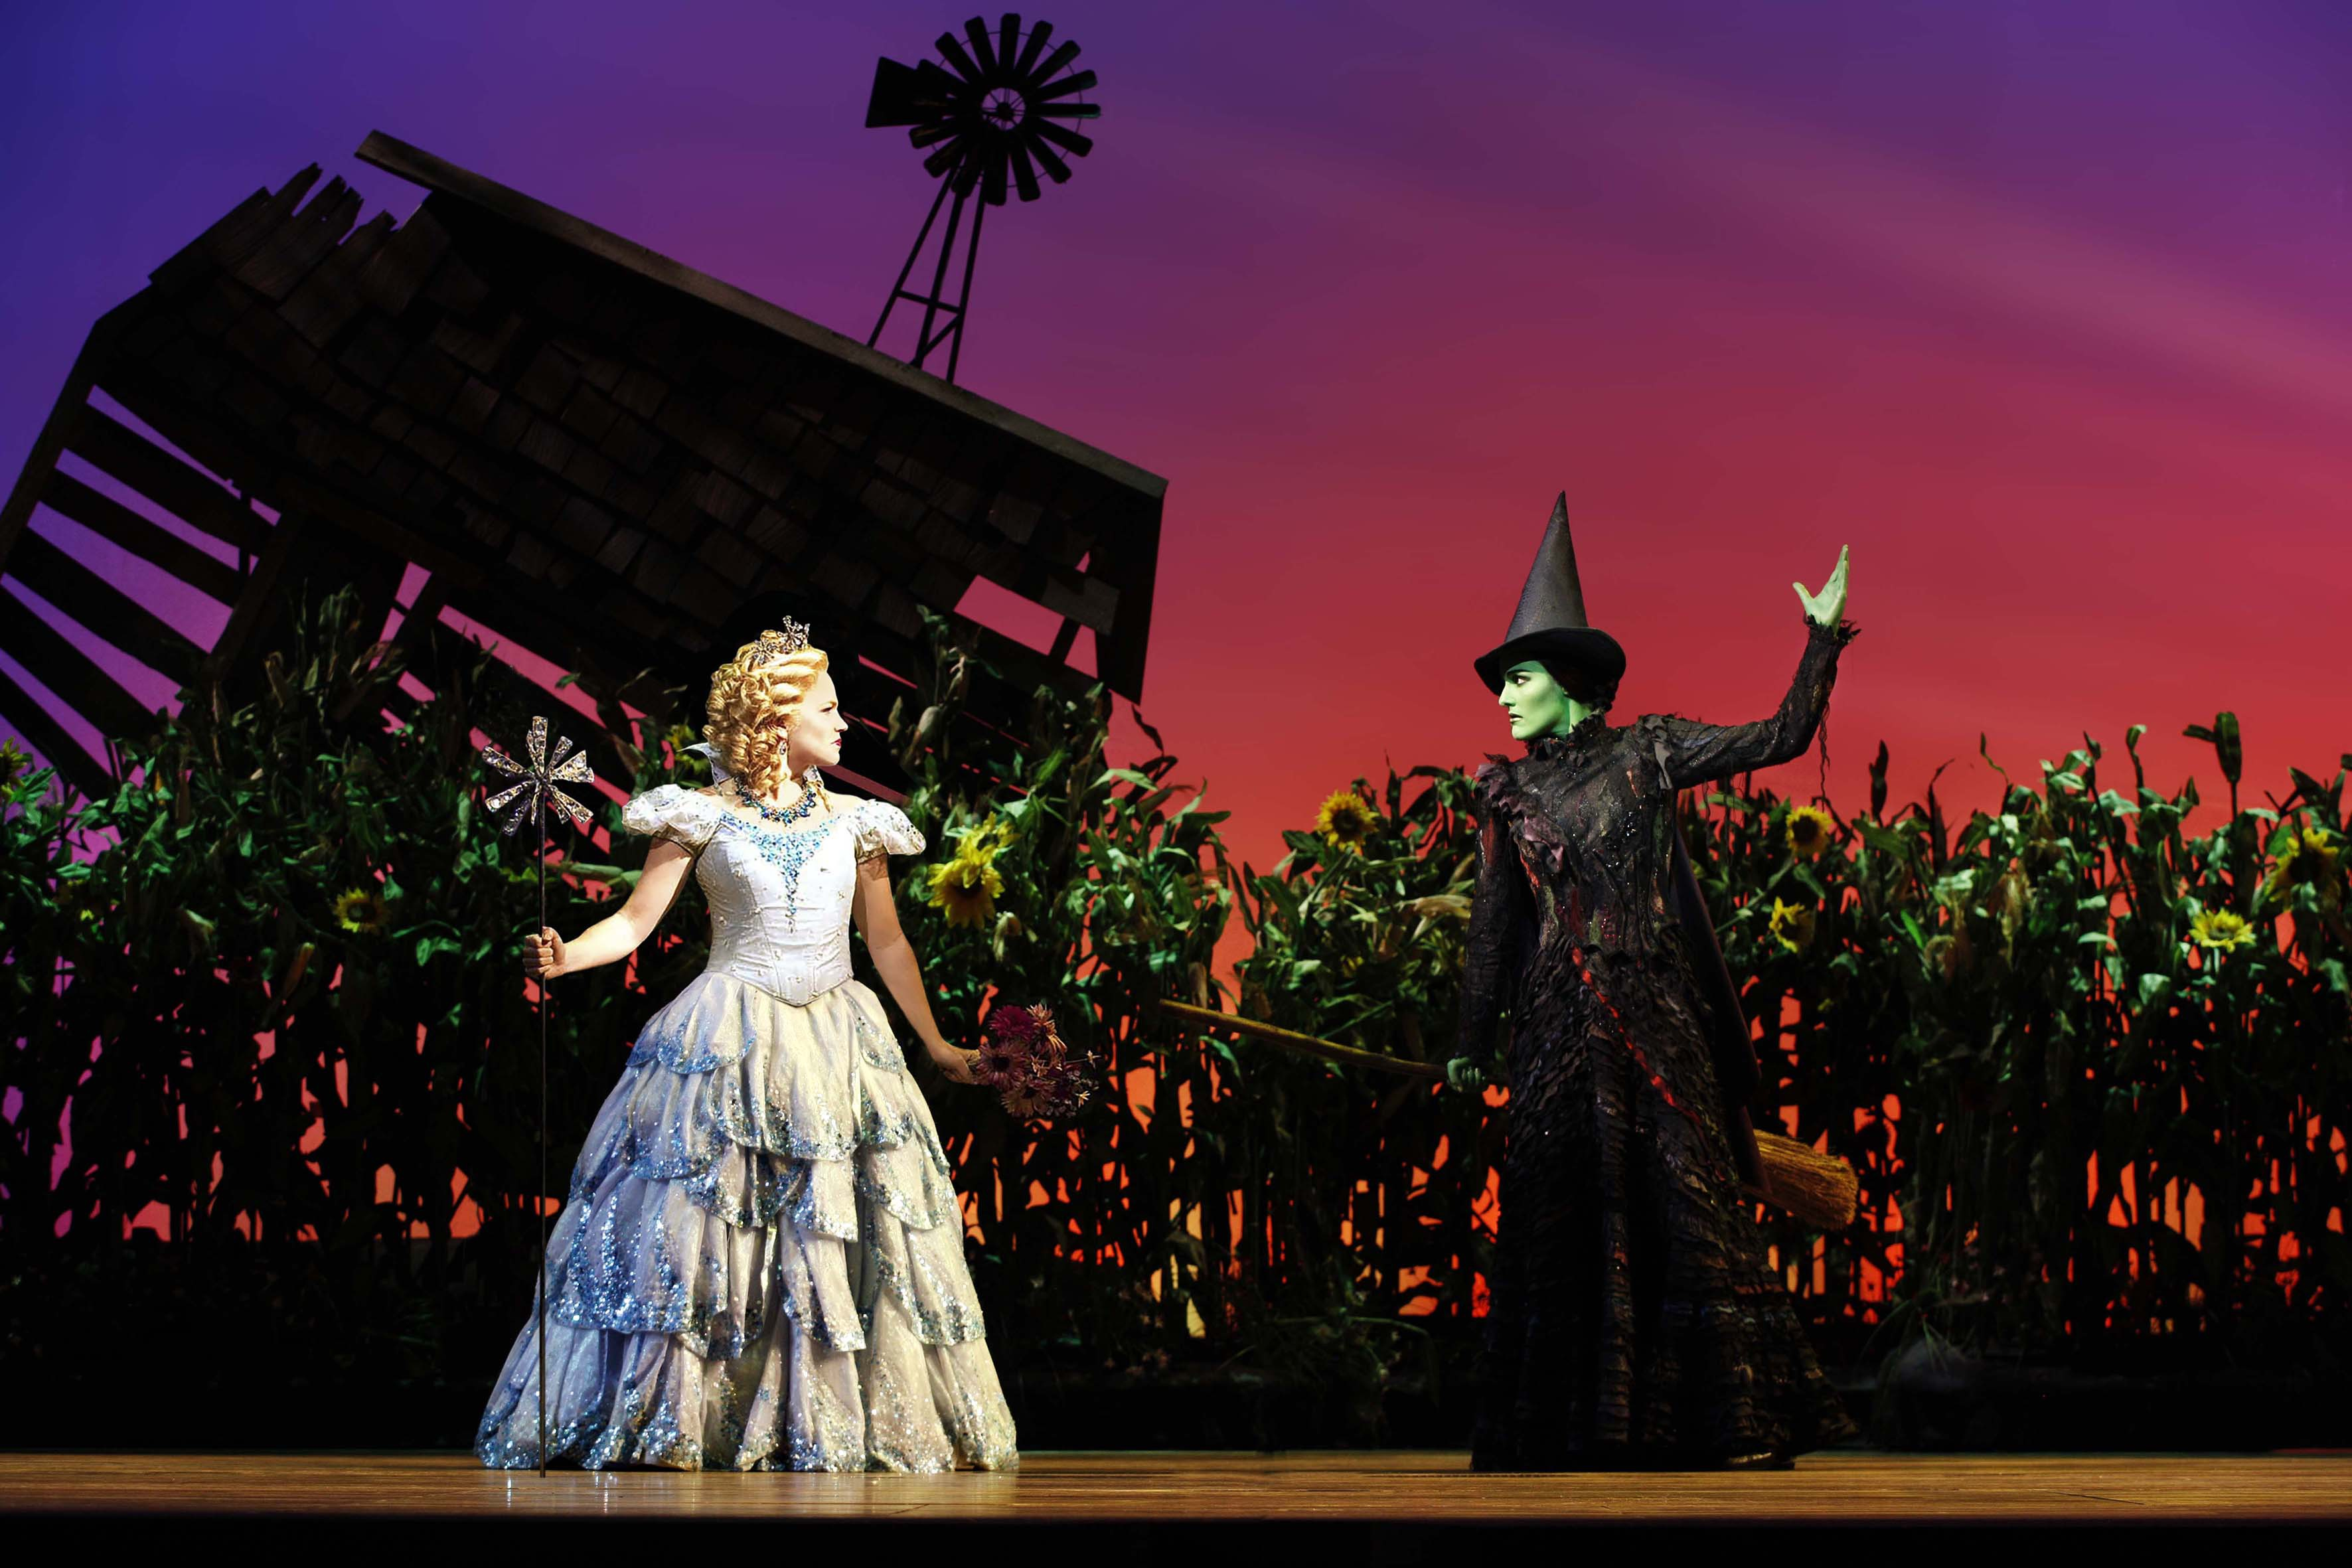 a review of the wicked witch of the west Wicked: life and times of the wicked witch of the west audiobook written by gregory maguire narrated by john mcdonough get instant access to all your favorite books.